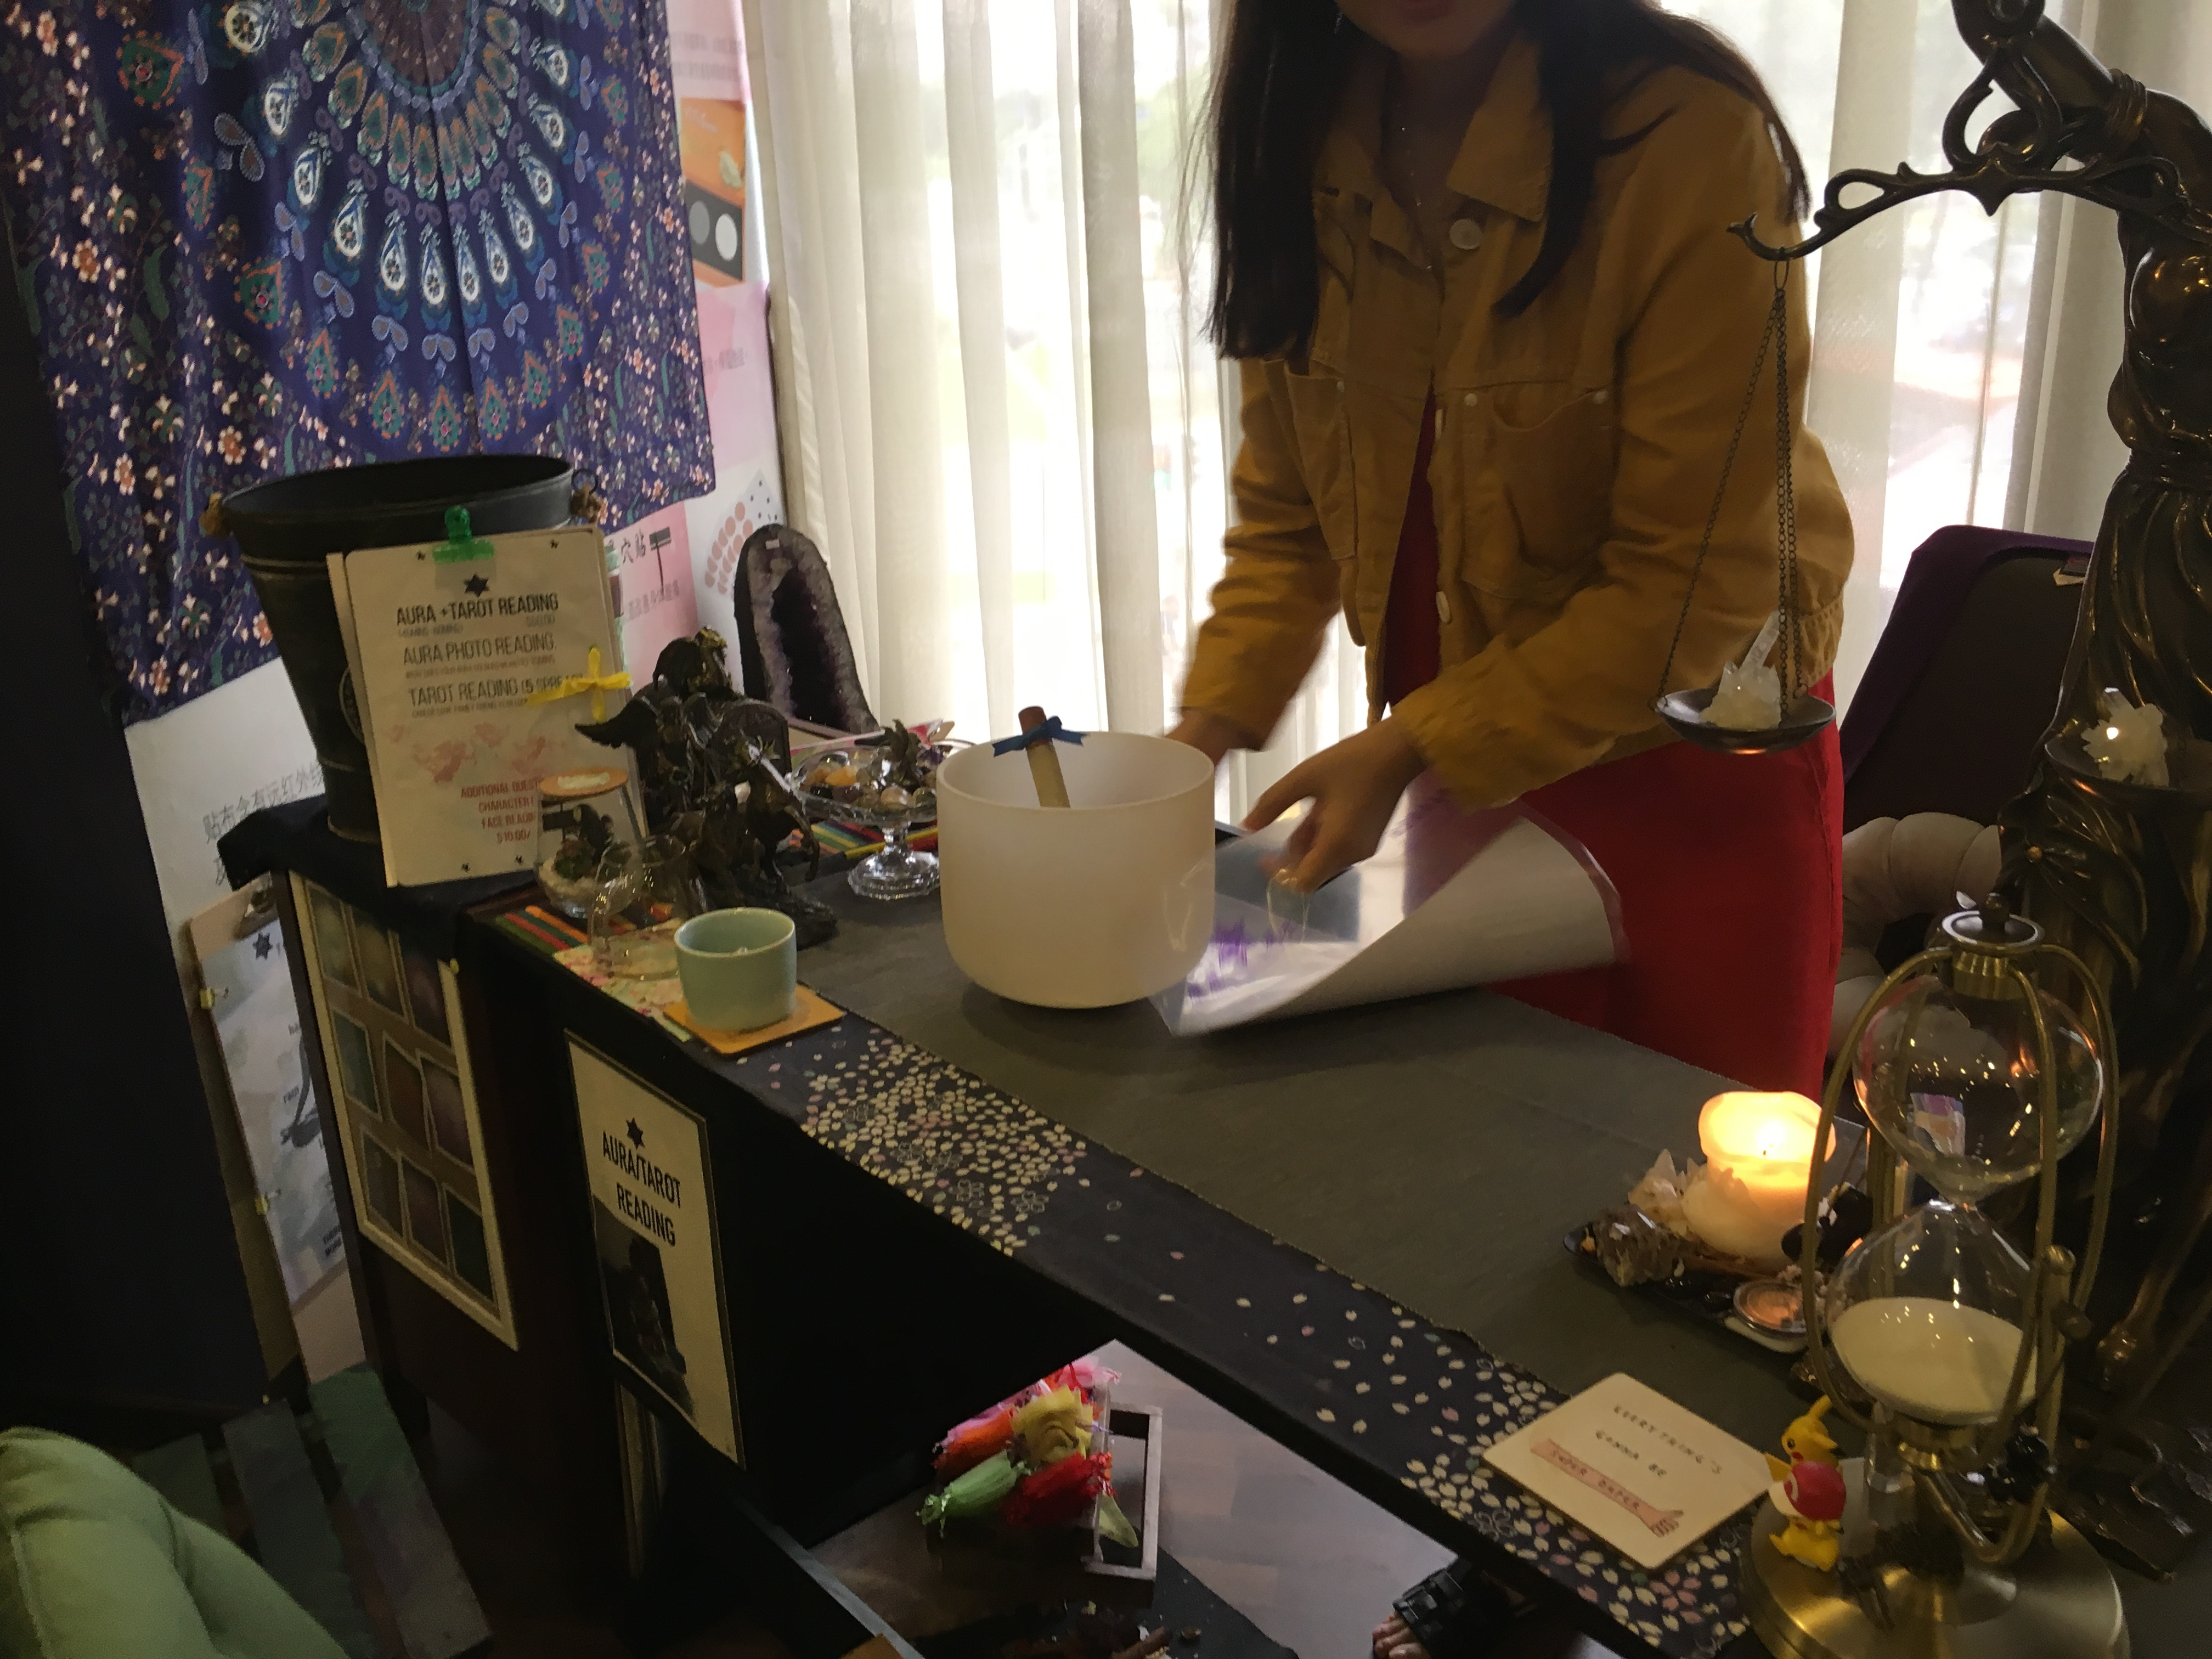 Can An Aura and Tarot Card Reading That Tells You Nothing Change Your Life? Quite Possibly